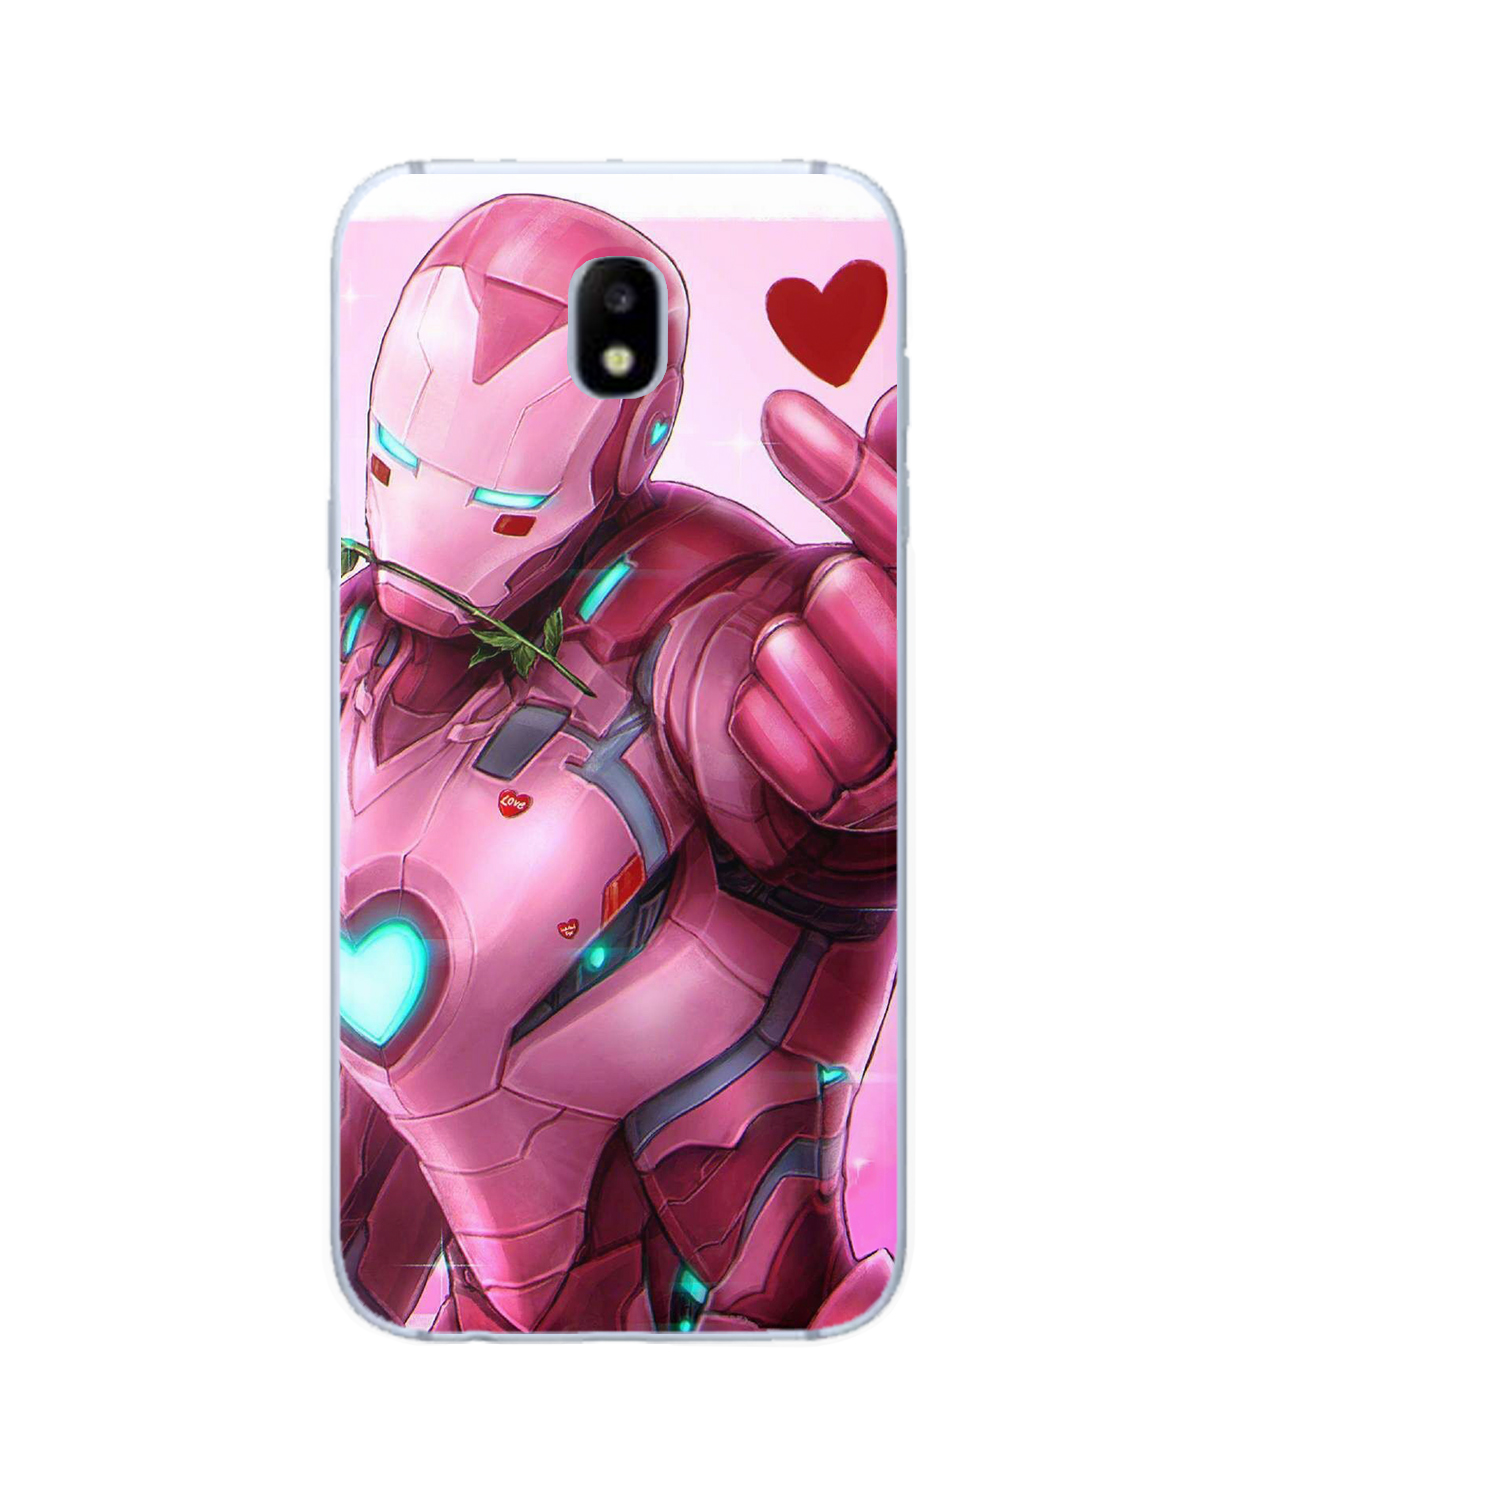 Luxury Cute Marvel Avengers Iron Man Spider Man Phone Case For Samsung Galaxy J3 J4 J5 J6 J7 J8 Plus 2016 2017 2018 Etui Coque in Fitted Cases from Cellphones Telecommunications